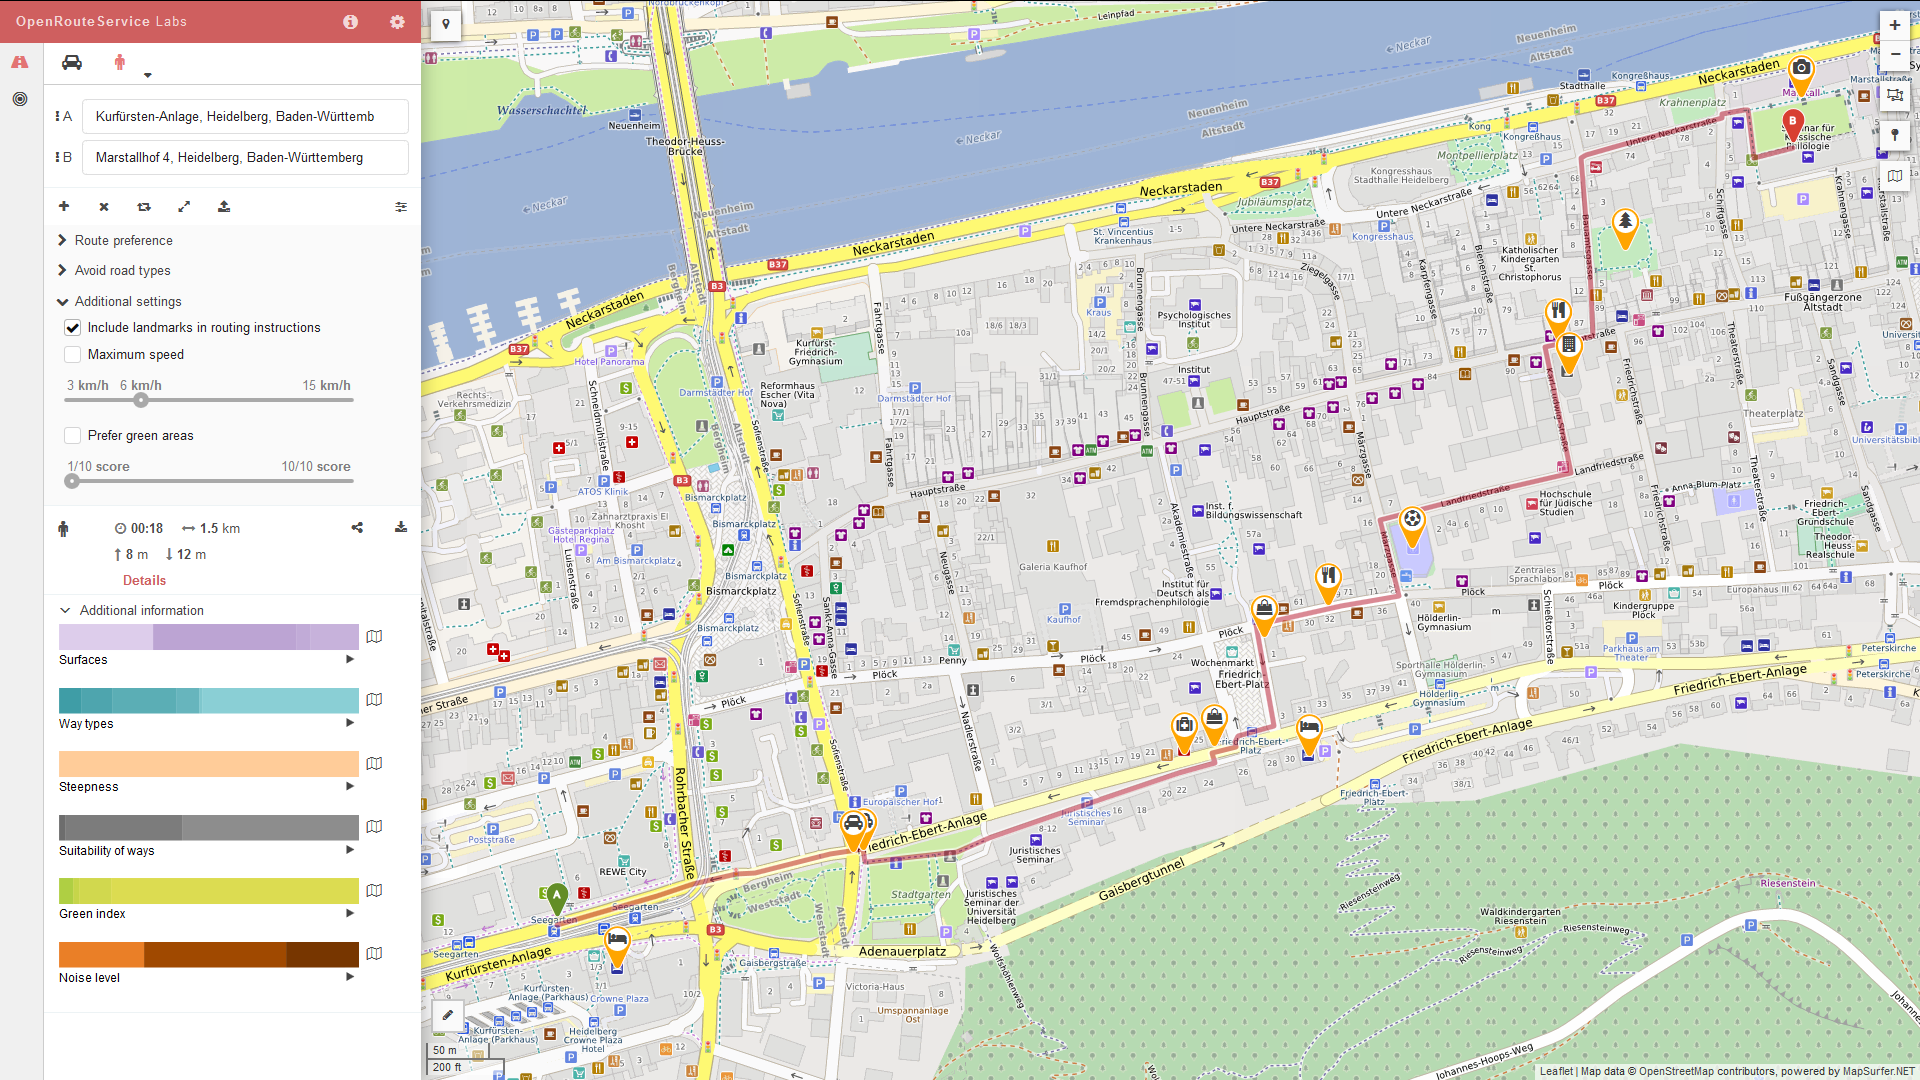 A route generated from OpenRouteService showing landmarks for key decision points